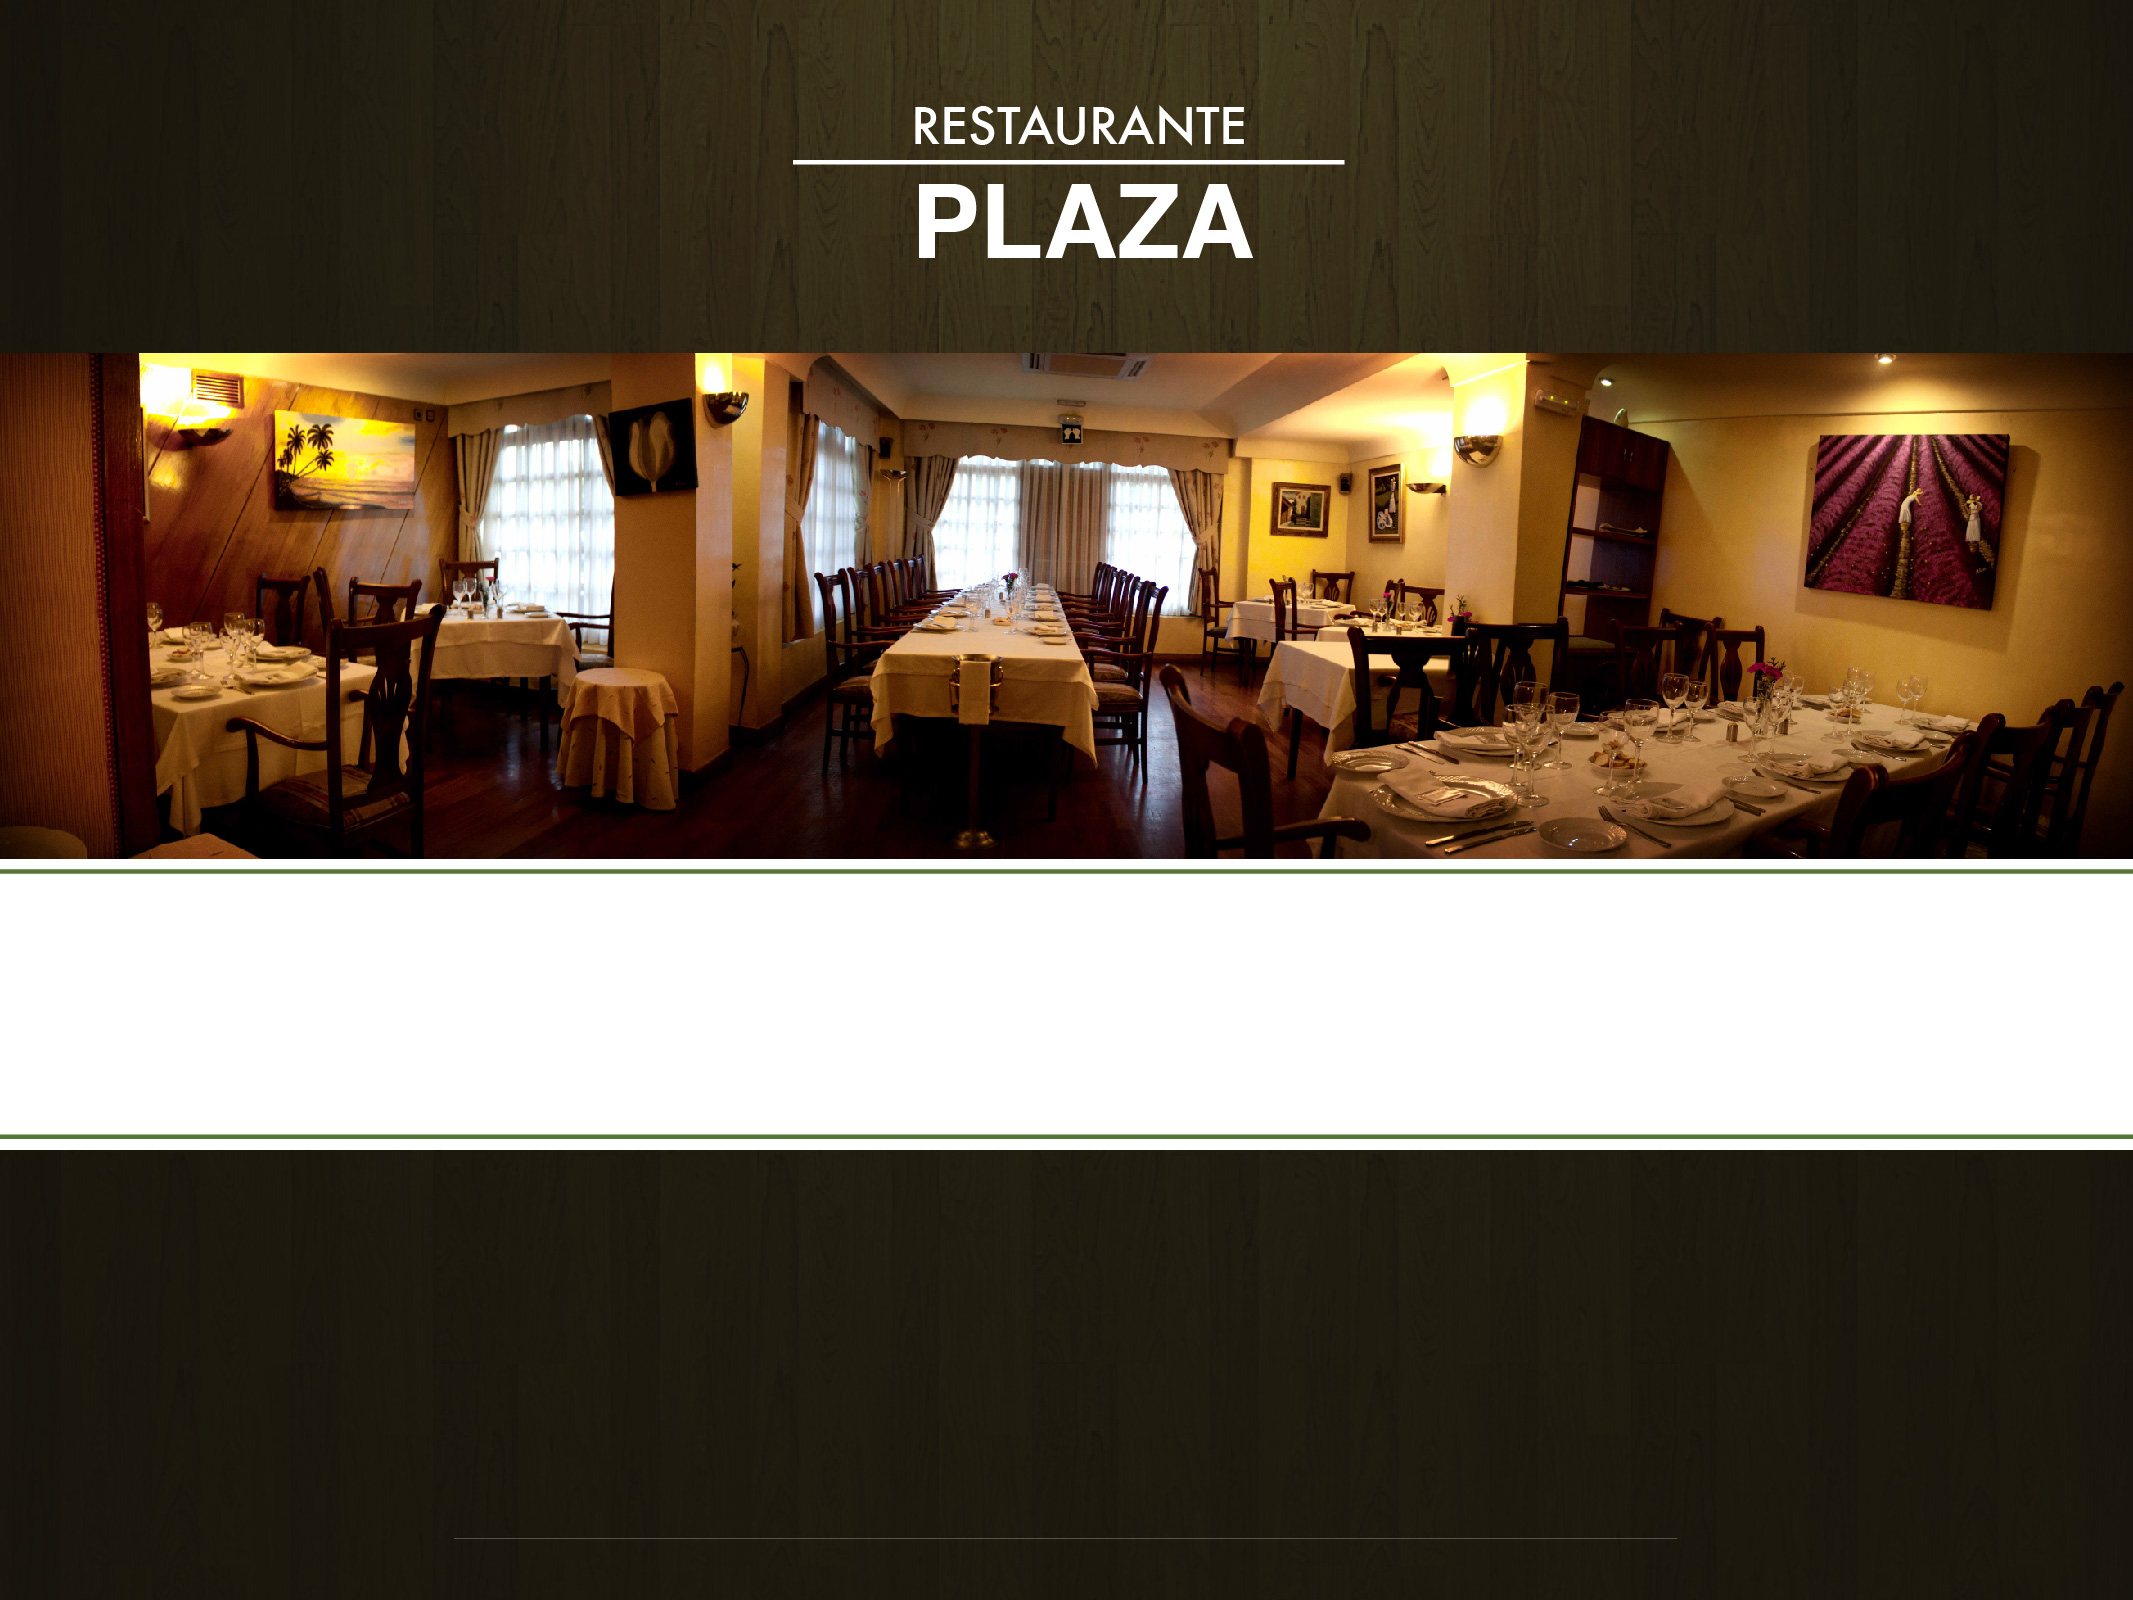 Plaza restaurant for Boutique hotel xym pyeongtaek